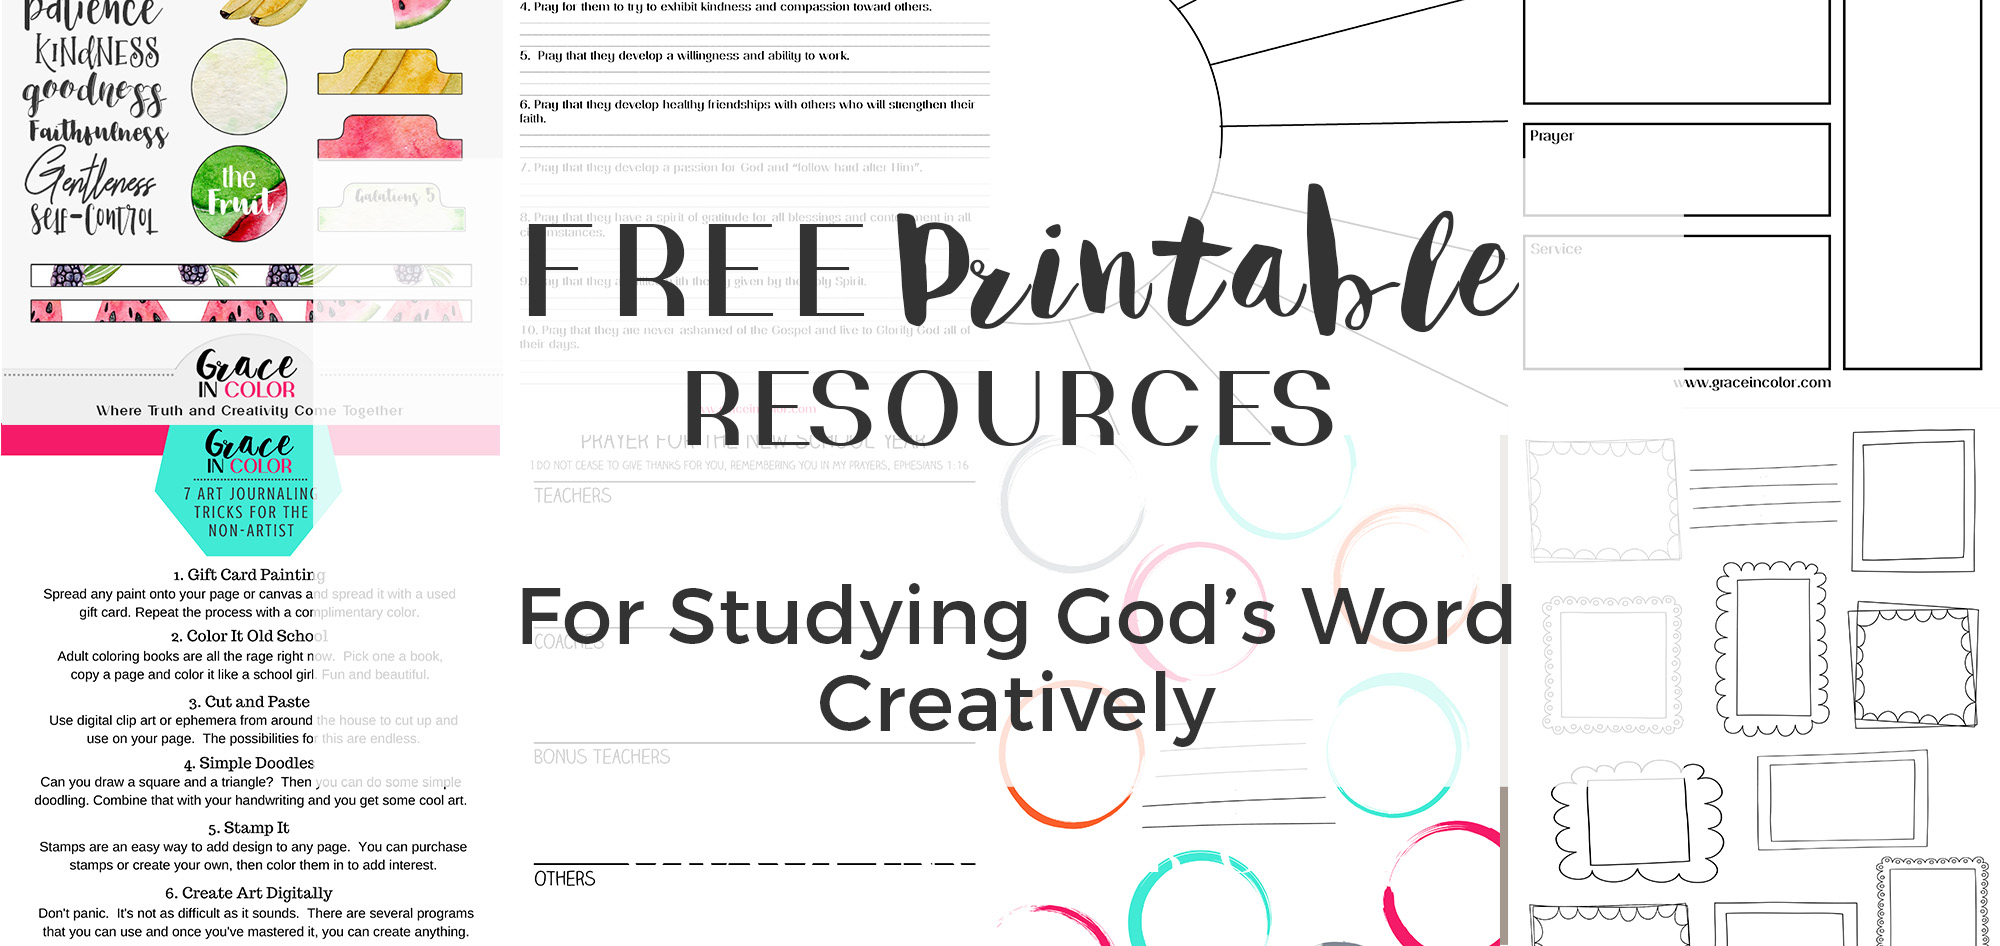 FREE RESOURCES FOR CREATIVE BIBLE STUDY